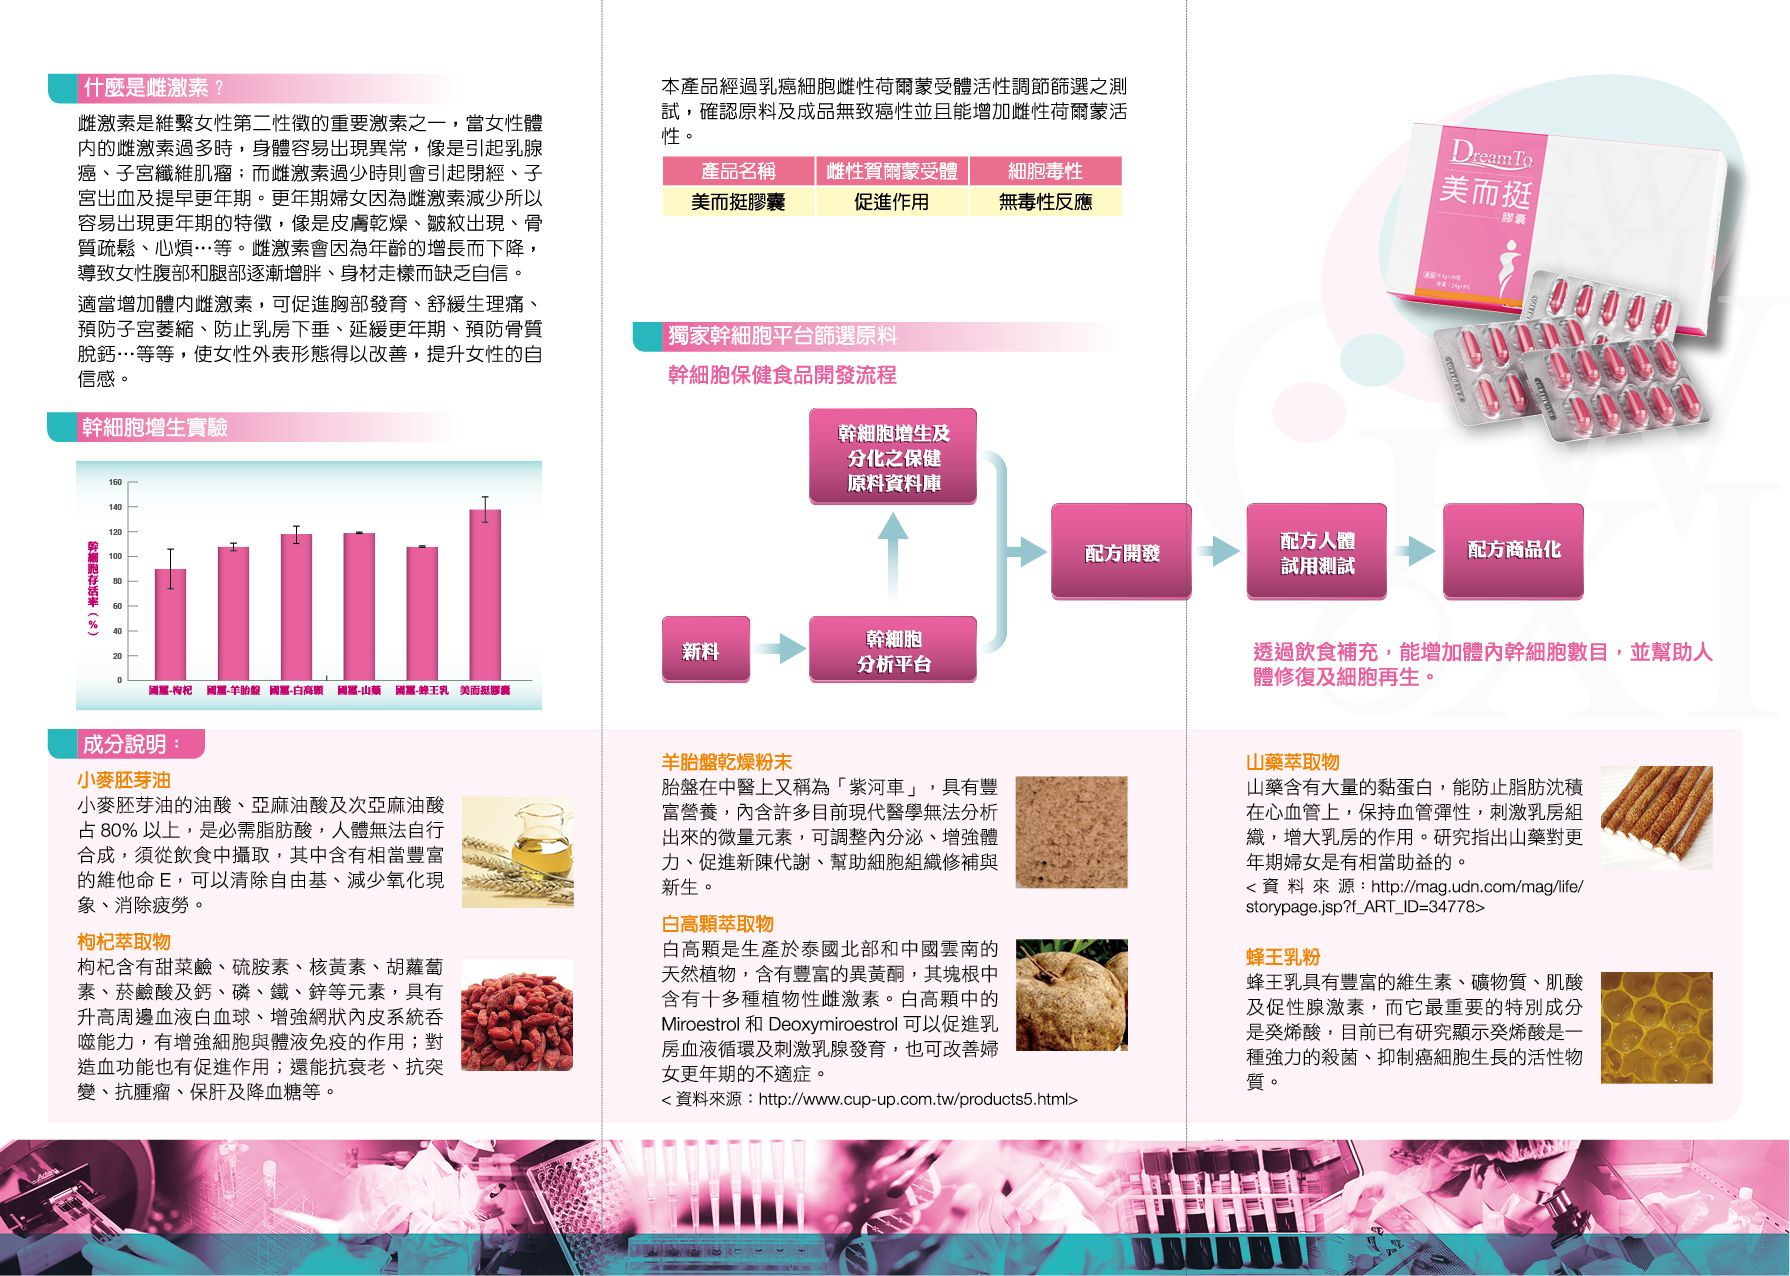 Gwoxi Stem Cell Applied Technology Co., Ltd. Product DM series